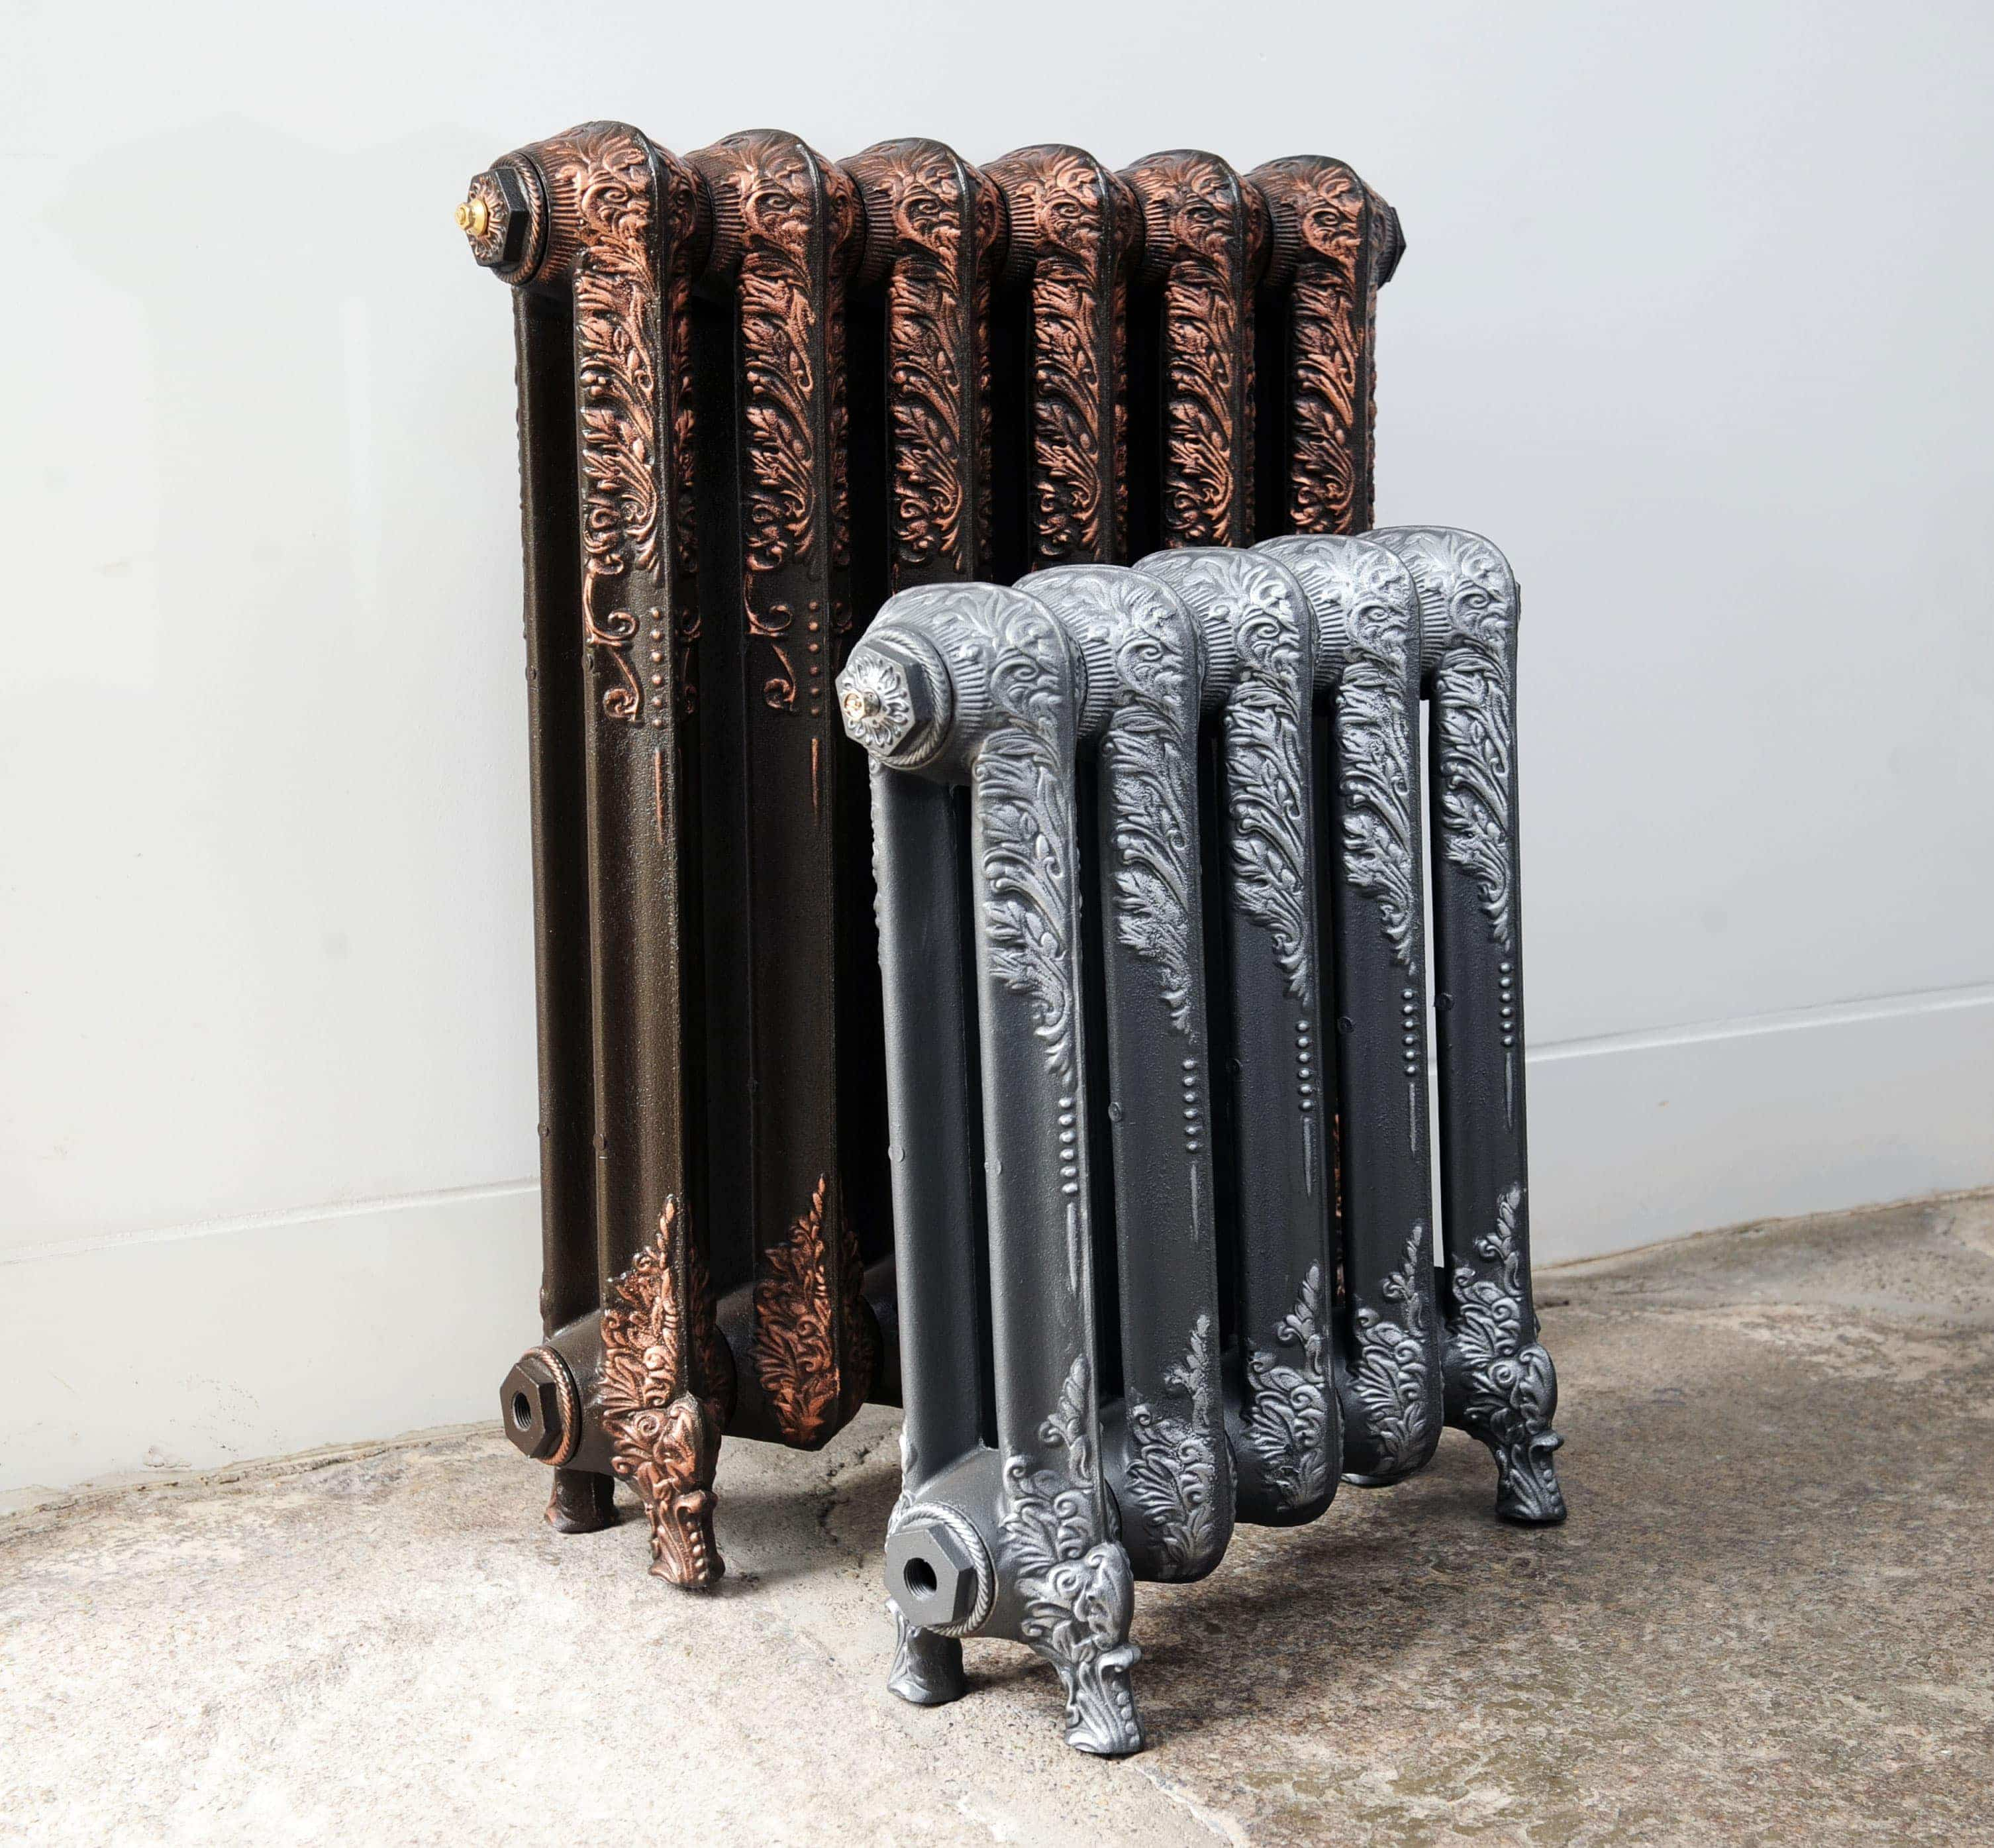 Downton Cast Iron Radiators (540mm to 740mm high)